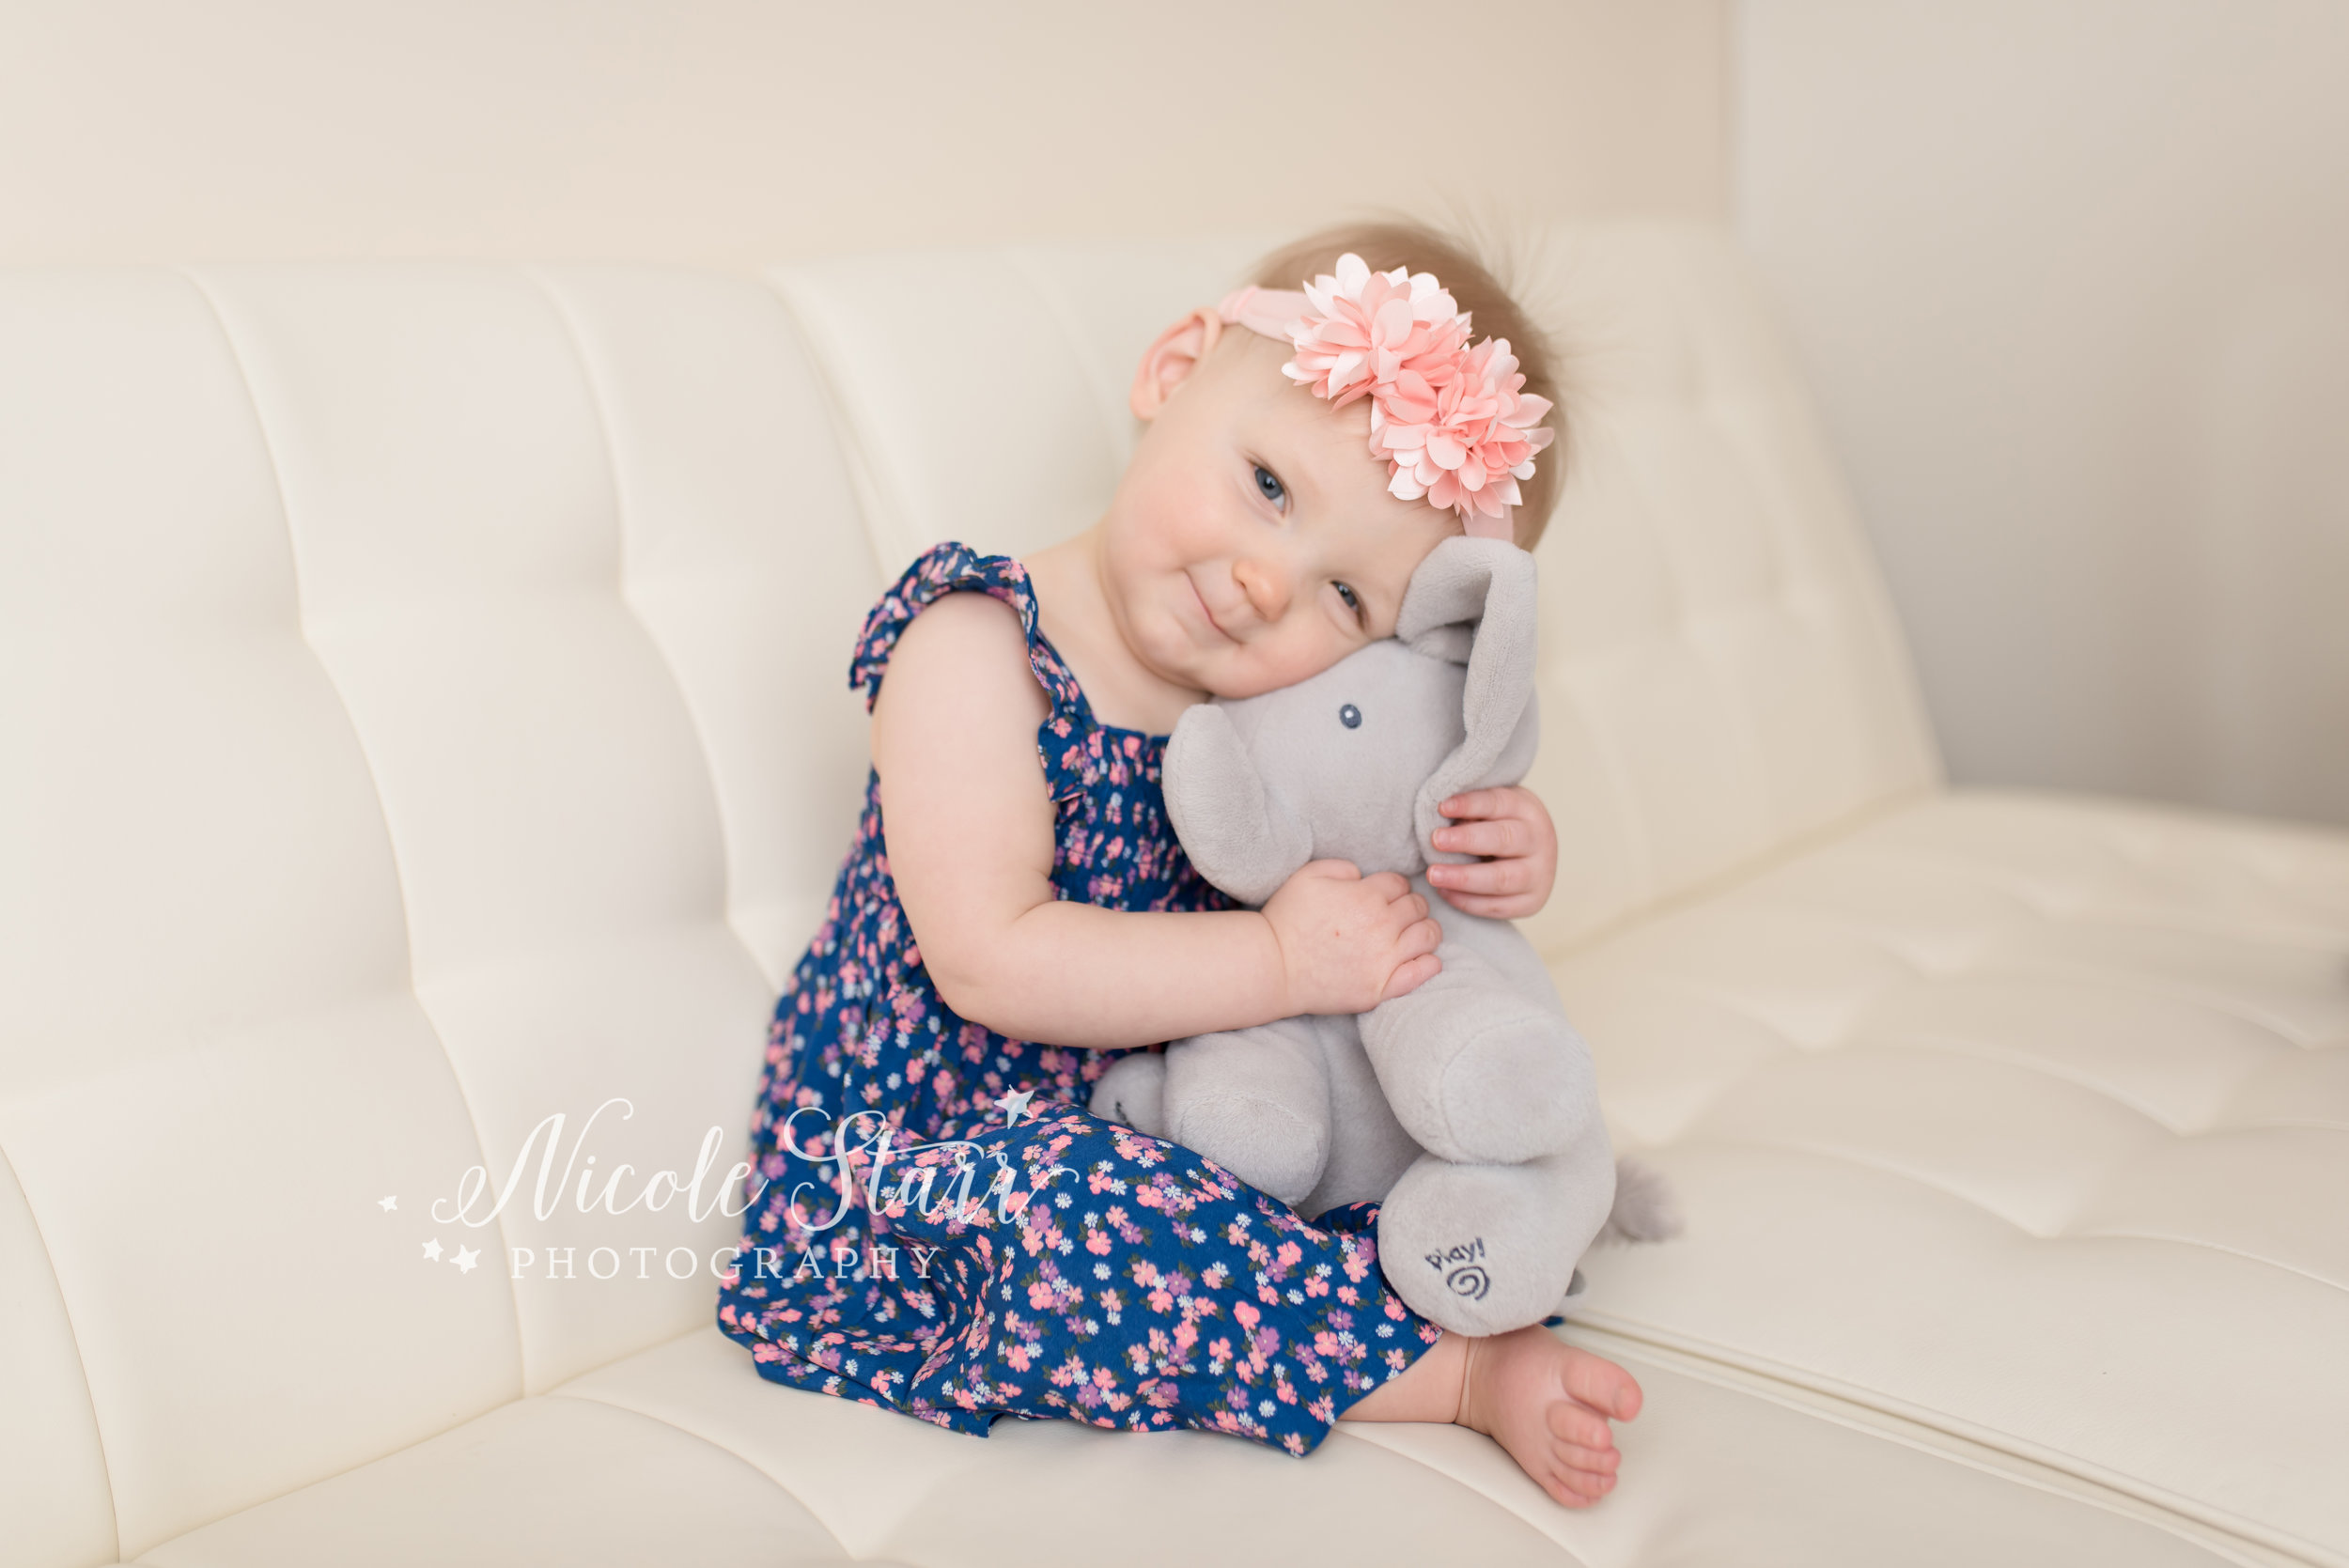 Nicole Starr Photography | Saratoga Springs Cake Smash Photographer | Boston Cake Smash Photographer | Saratoga Springs Family Photographer | Boston Family Photographer | Delmar NY Cake Smash Photographer | Loudonville Cake Smash Photographer